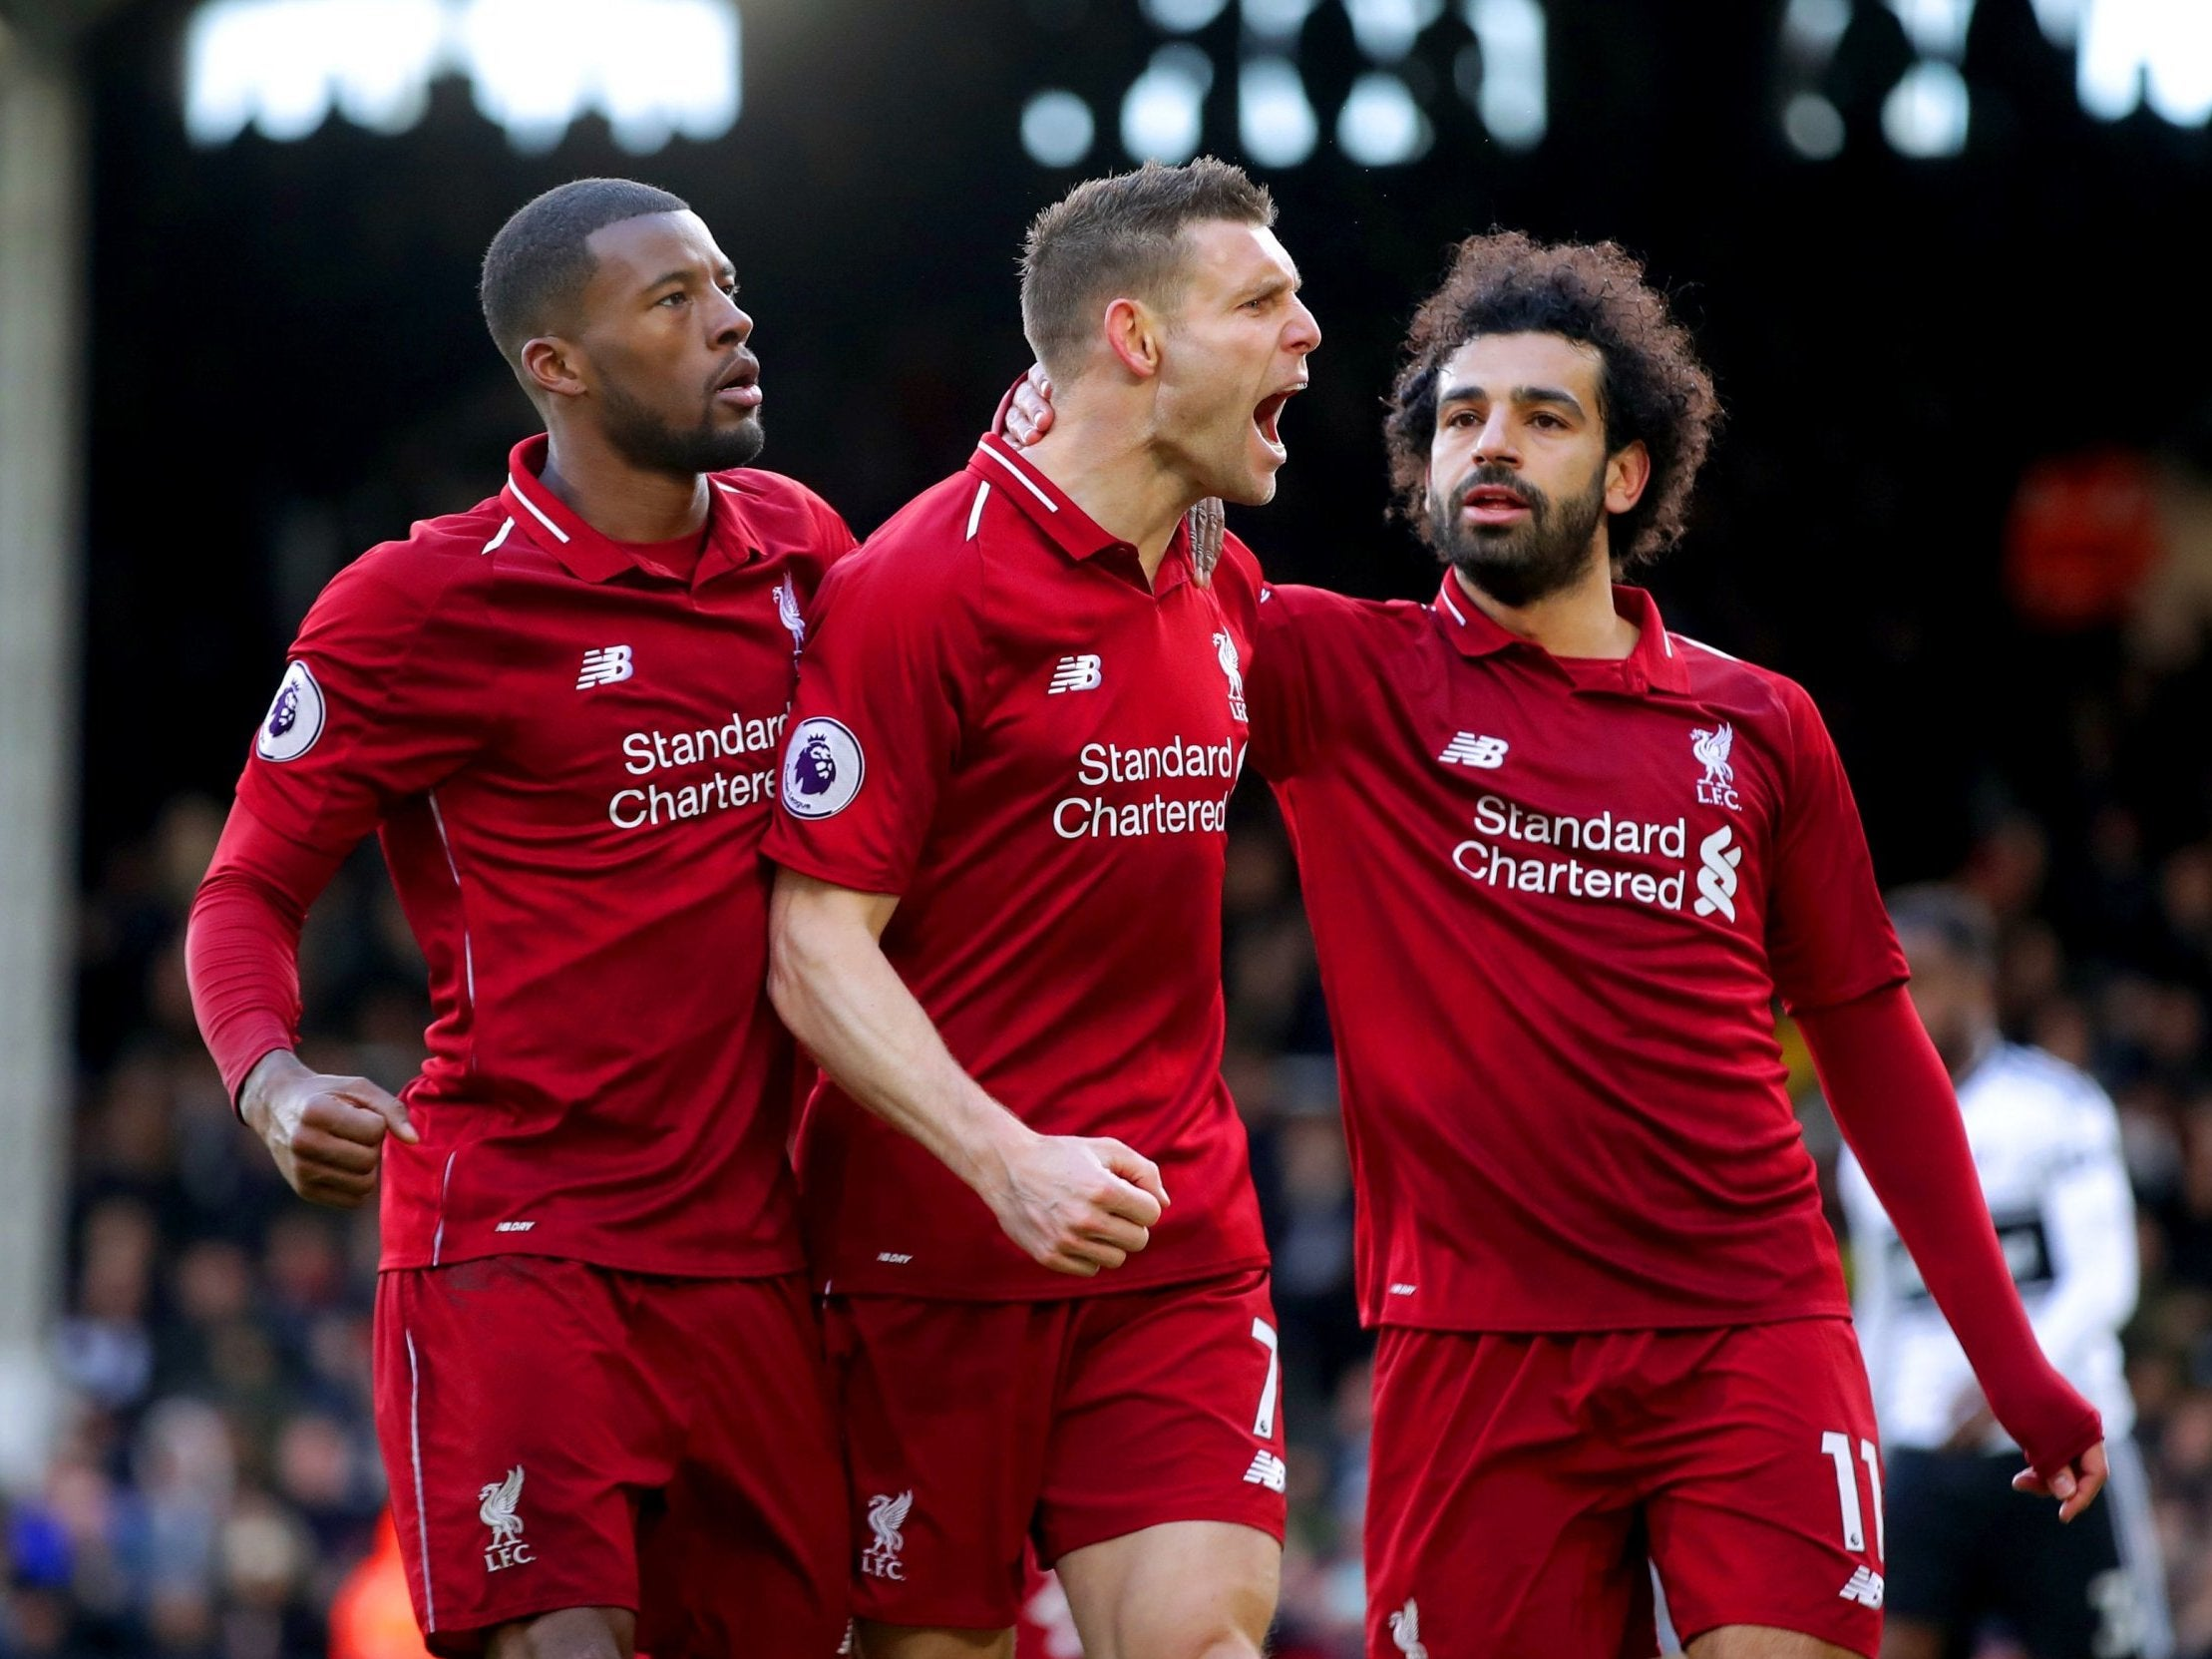 Fulham Vs Liverpool Result Five Things We Learned As Reds Return To The Top Of The Premier League The Independent The Independent